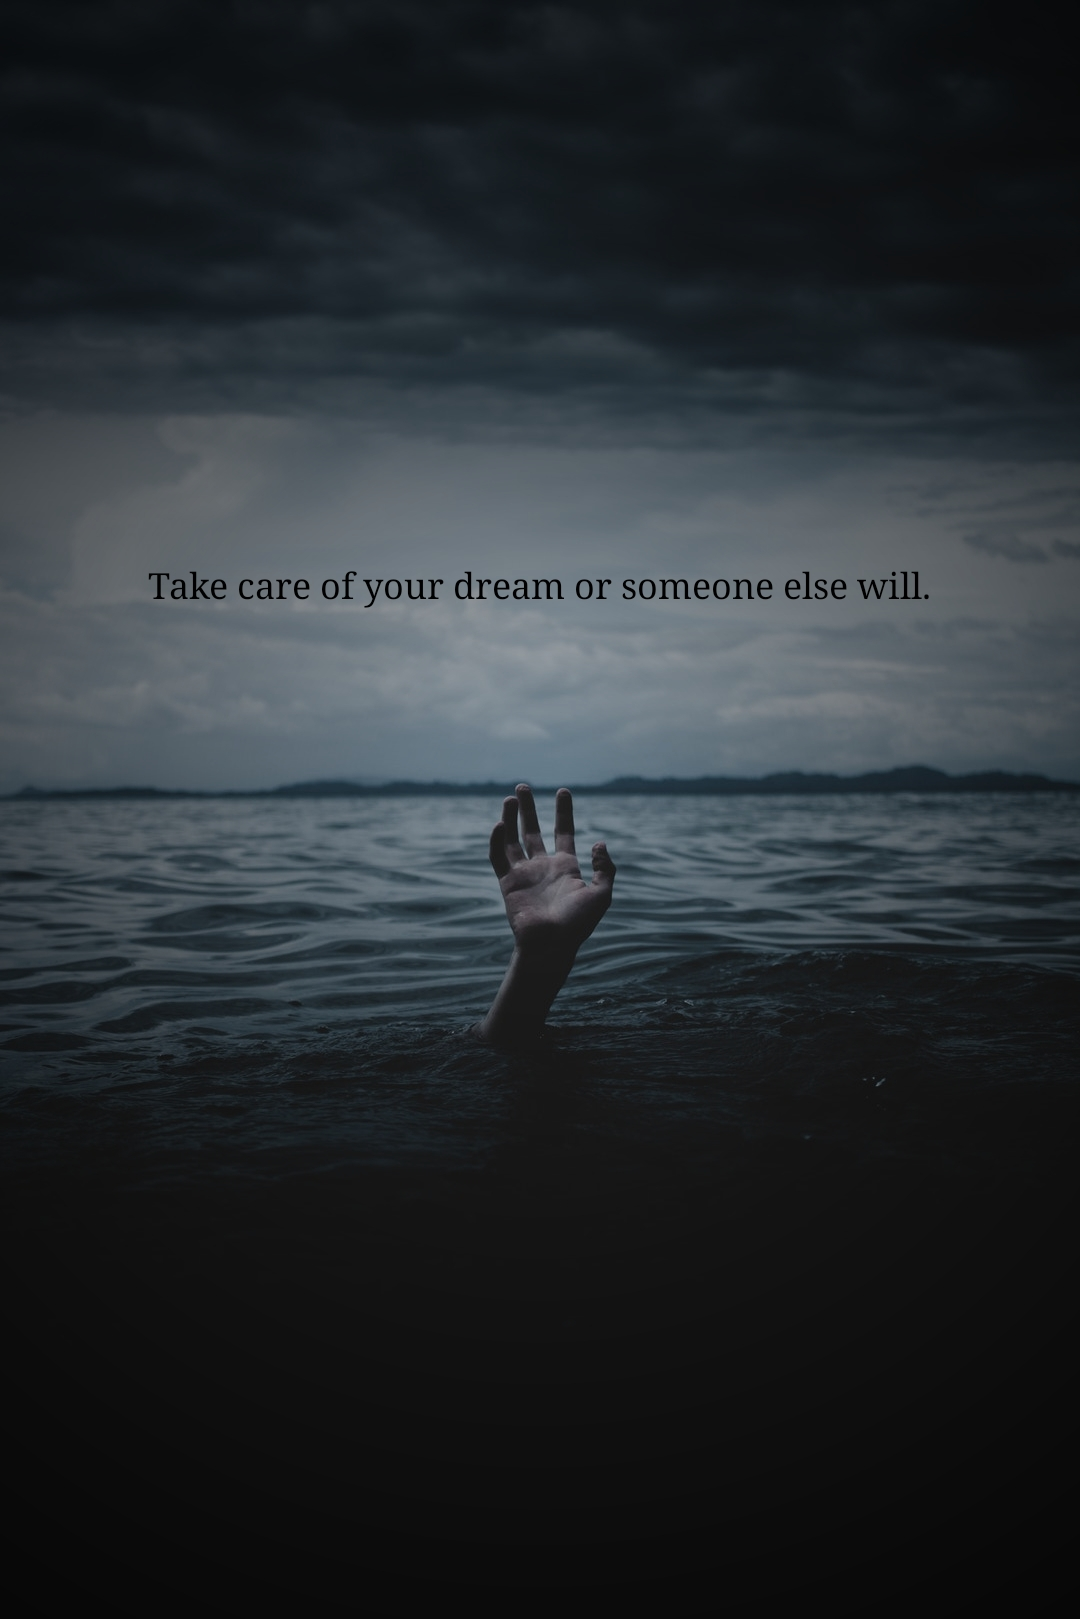 [IMAGE] DREAMS COME TRUE, IT WILL BE SOMEONE ELSE IF NOT YOU.